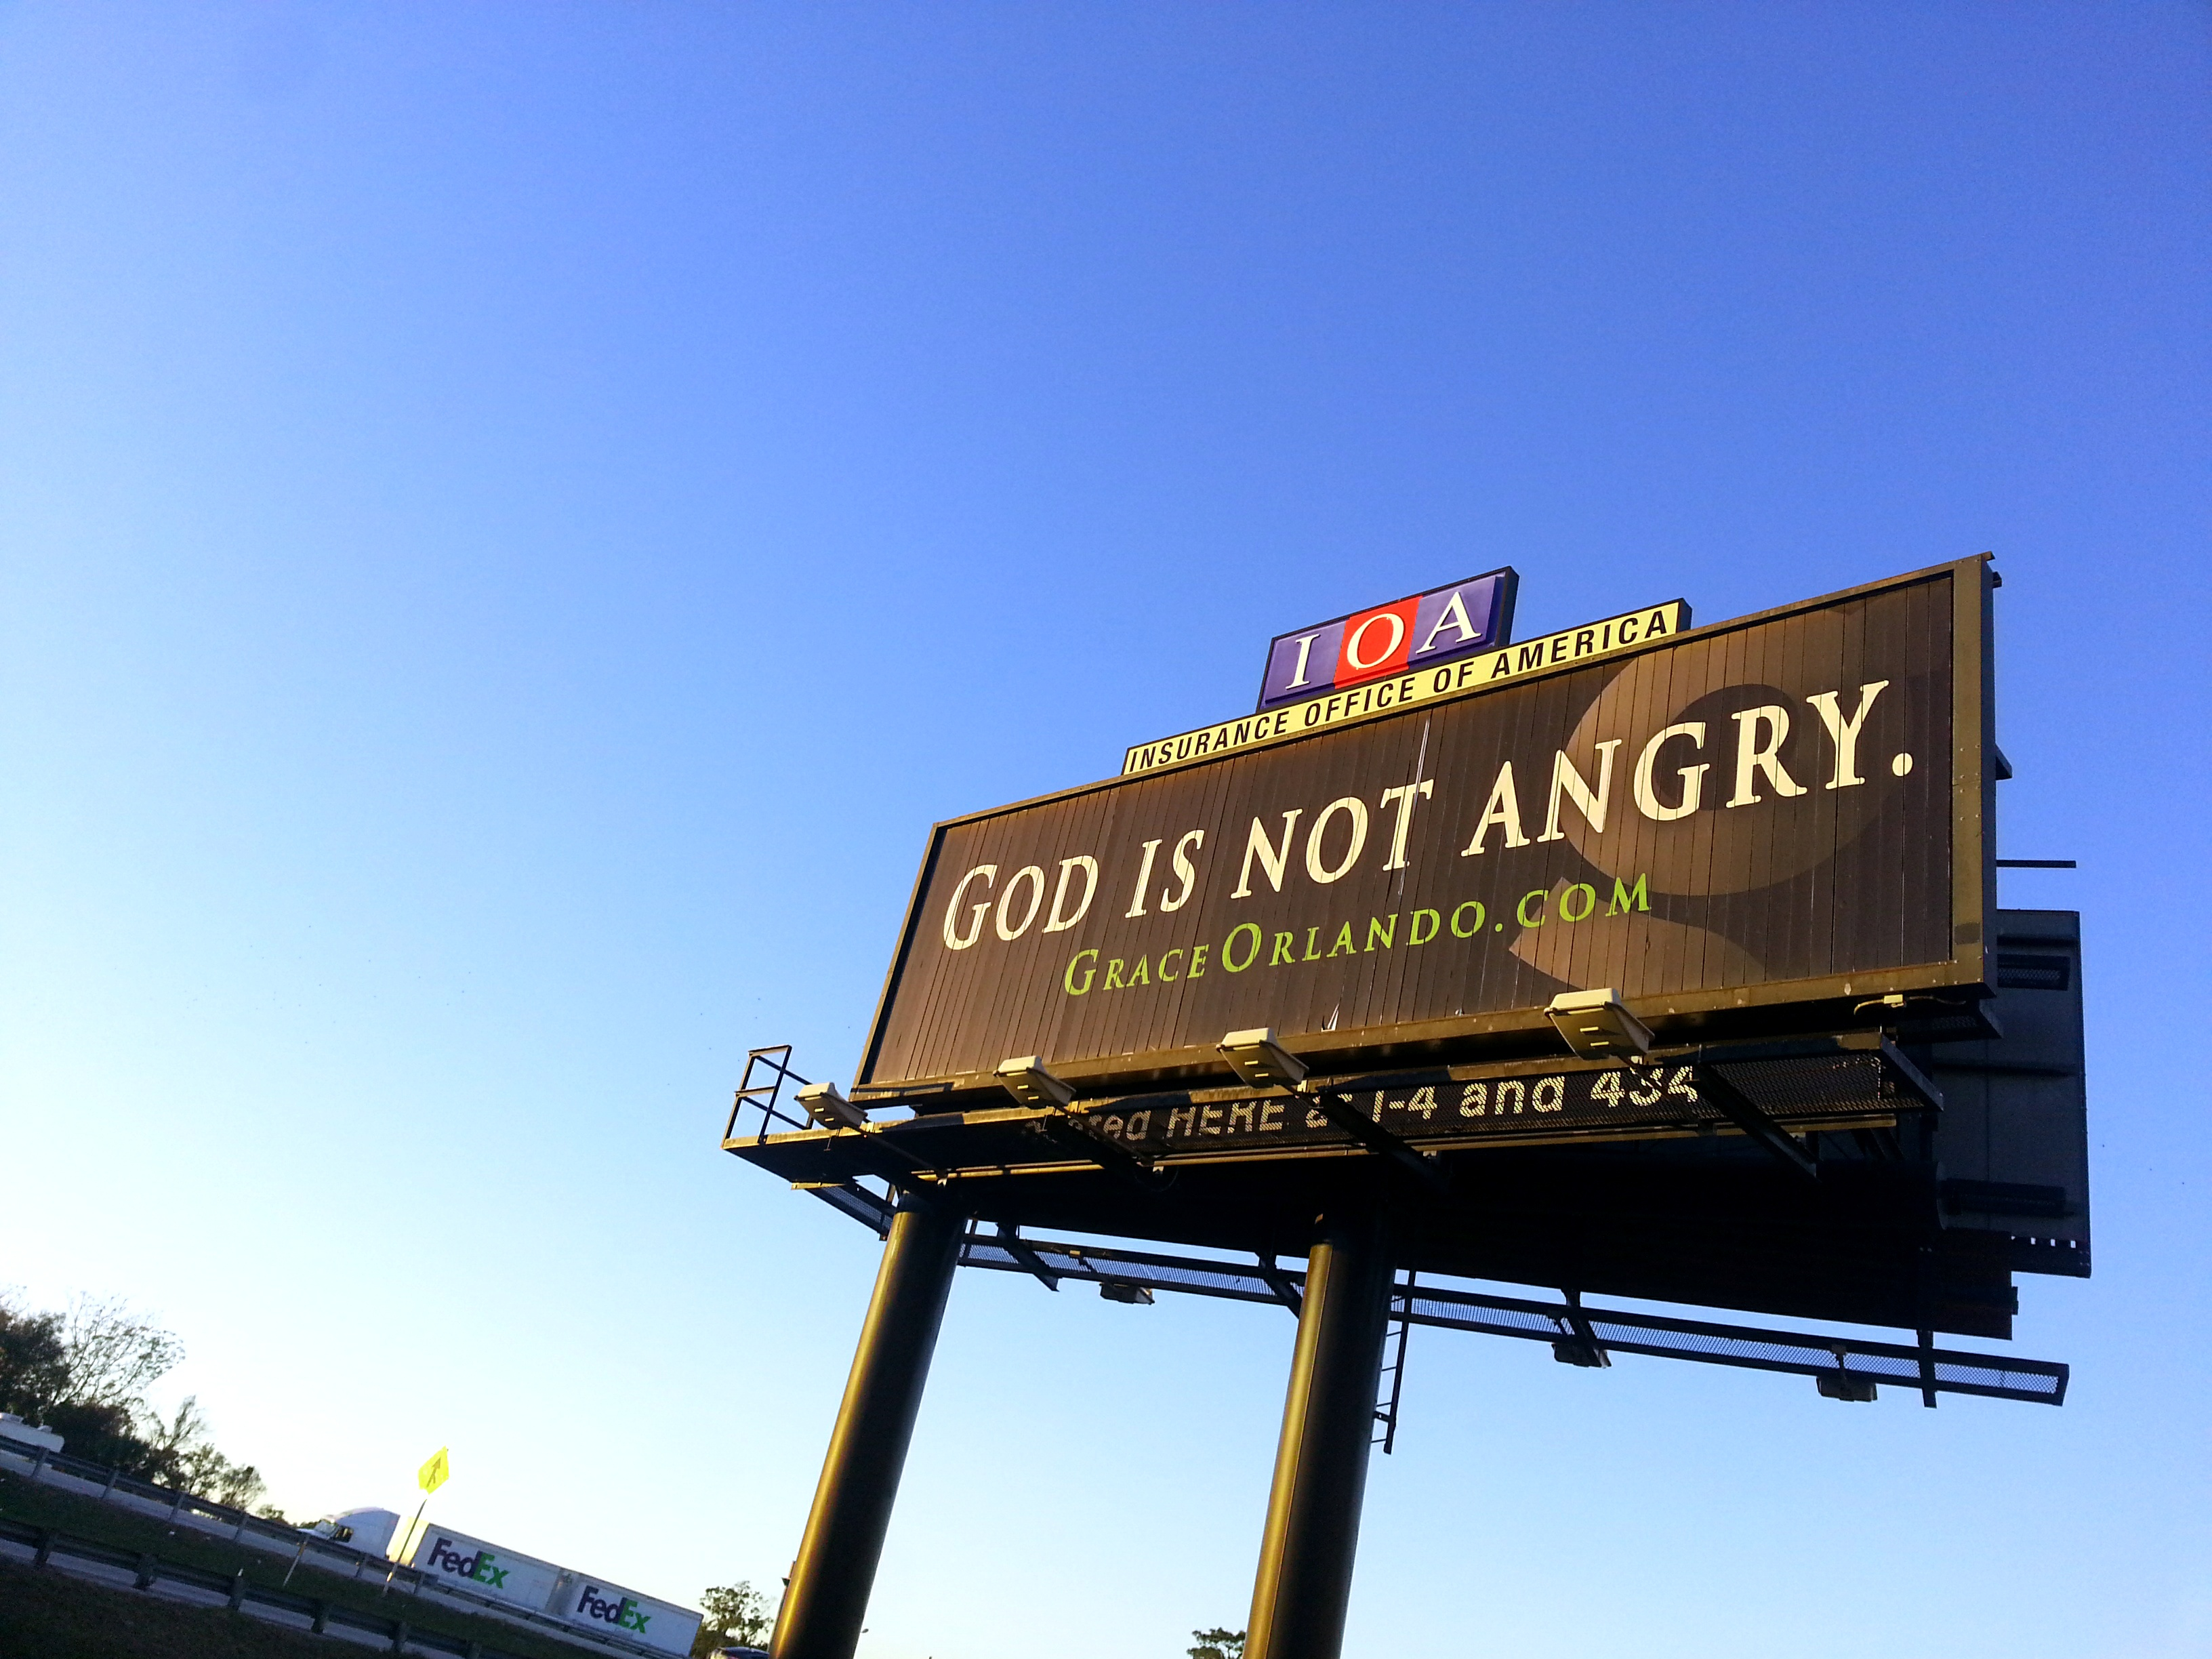 If 'GOD IS NOT ANGRY,' why is the billboard in all caps?